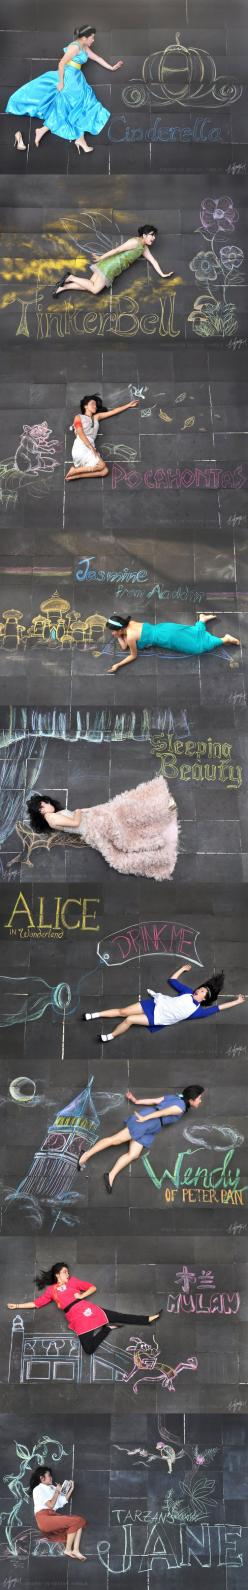 Disney Ladies Chalk Photography  This is the coolest thing I've ever seen. Currently bowing down to the girl who made this.: Disney Princess Drawings, Disney Princesses, Disney Drawings Princess, Disney Princess Photography, Chalk Photography, Things